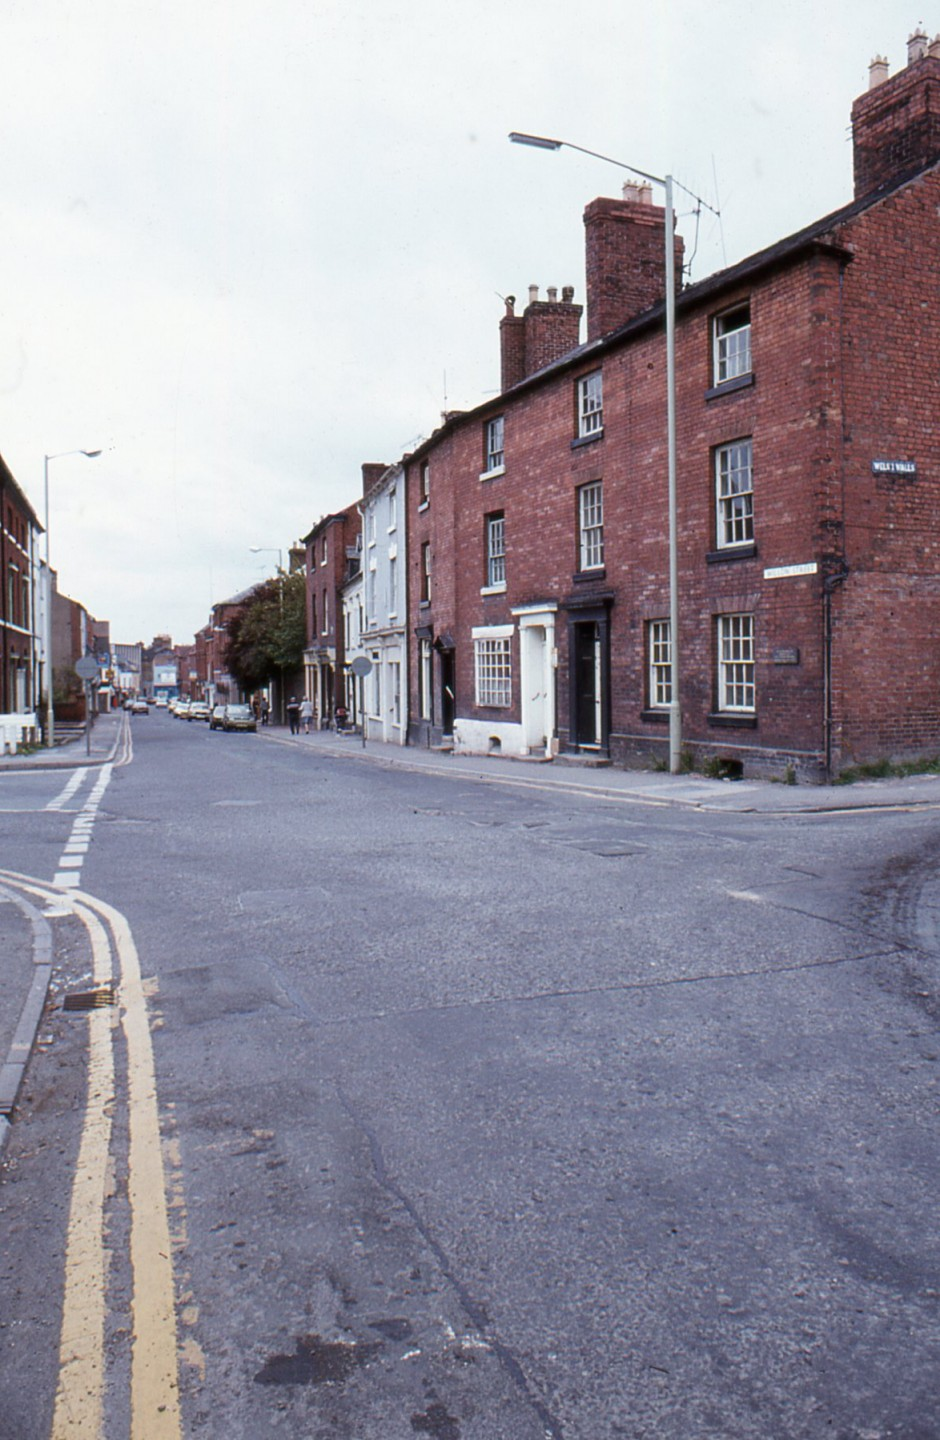 SL-O-5-18-1 Oswestry - Willow St - Looking East